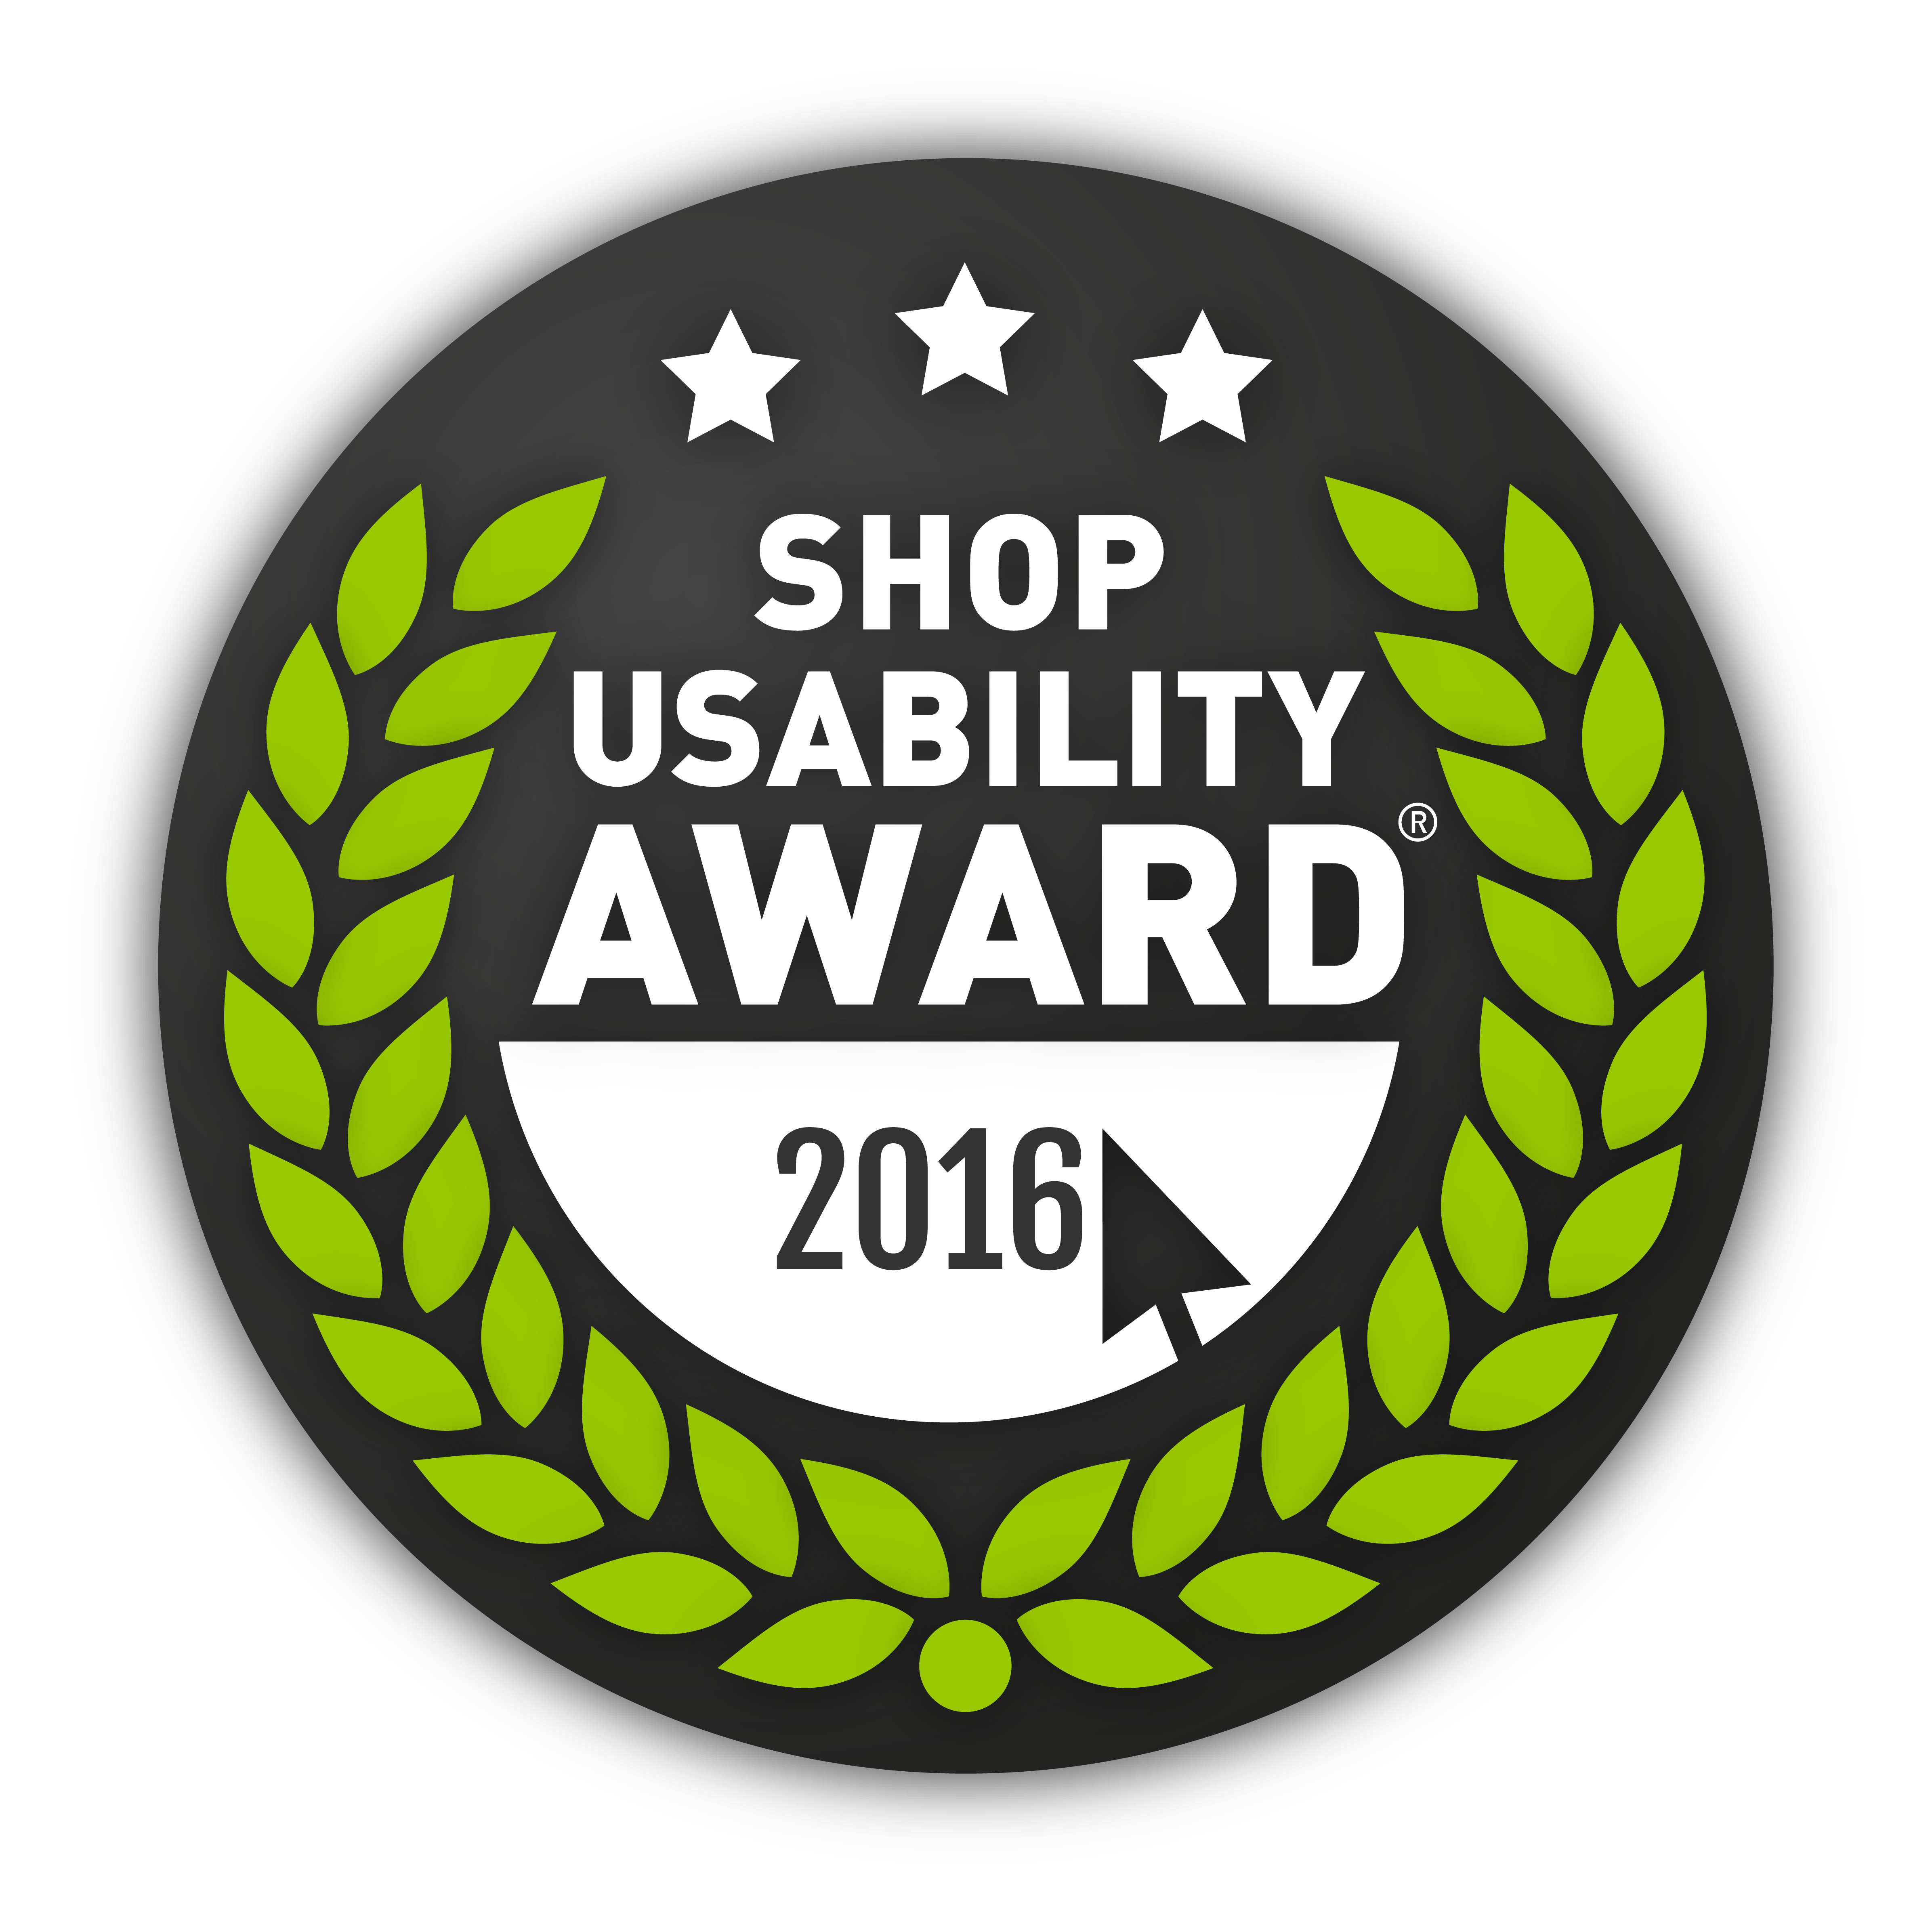 shopusabilityawardR_LOGO_2016